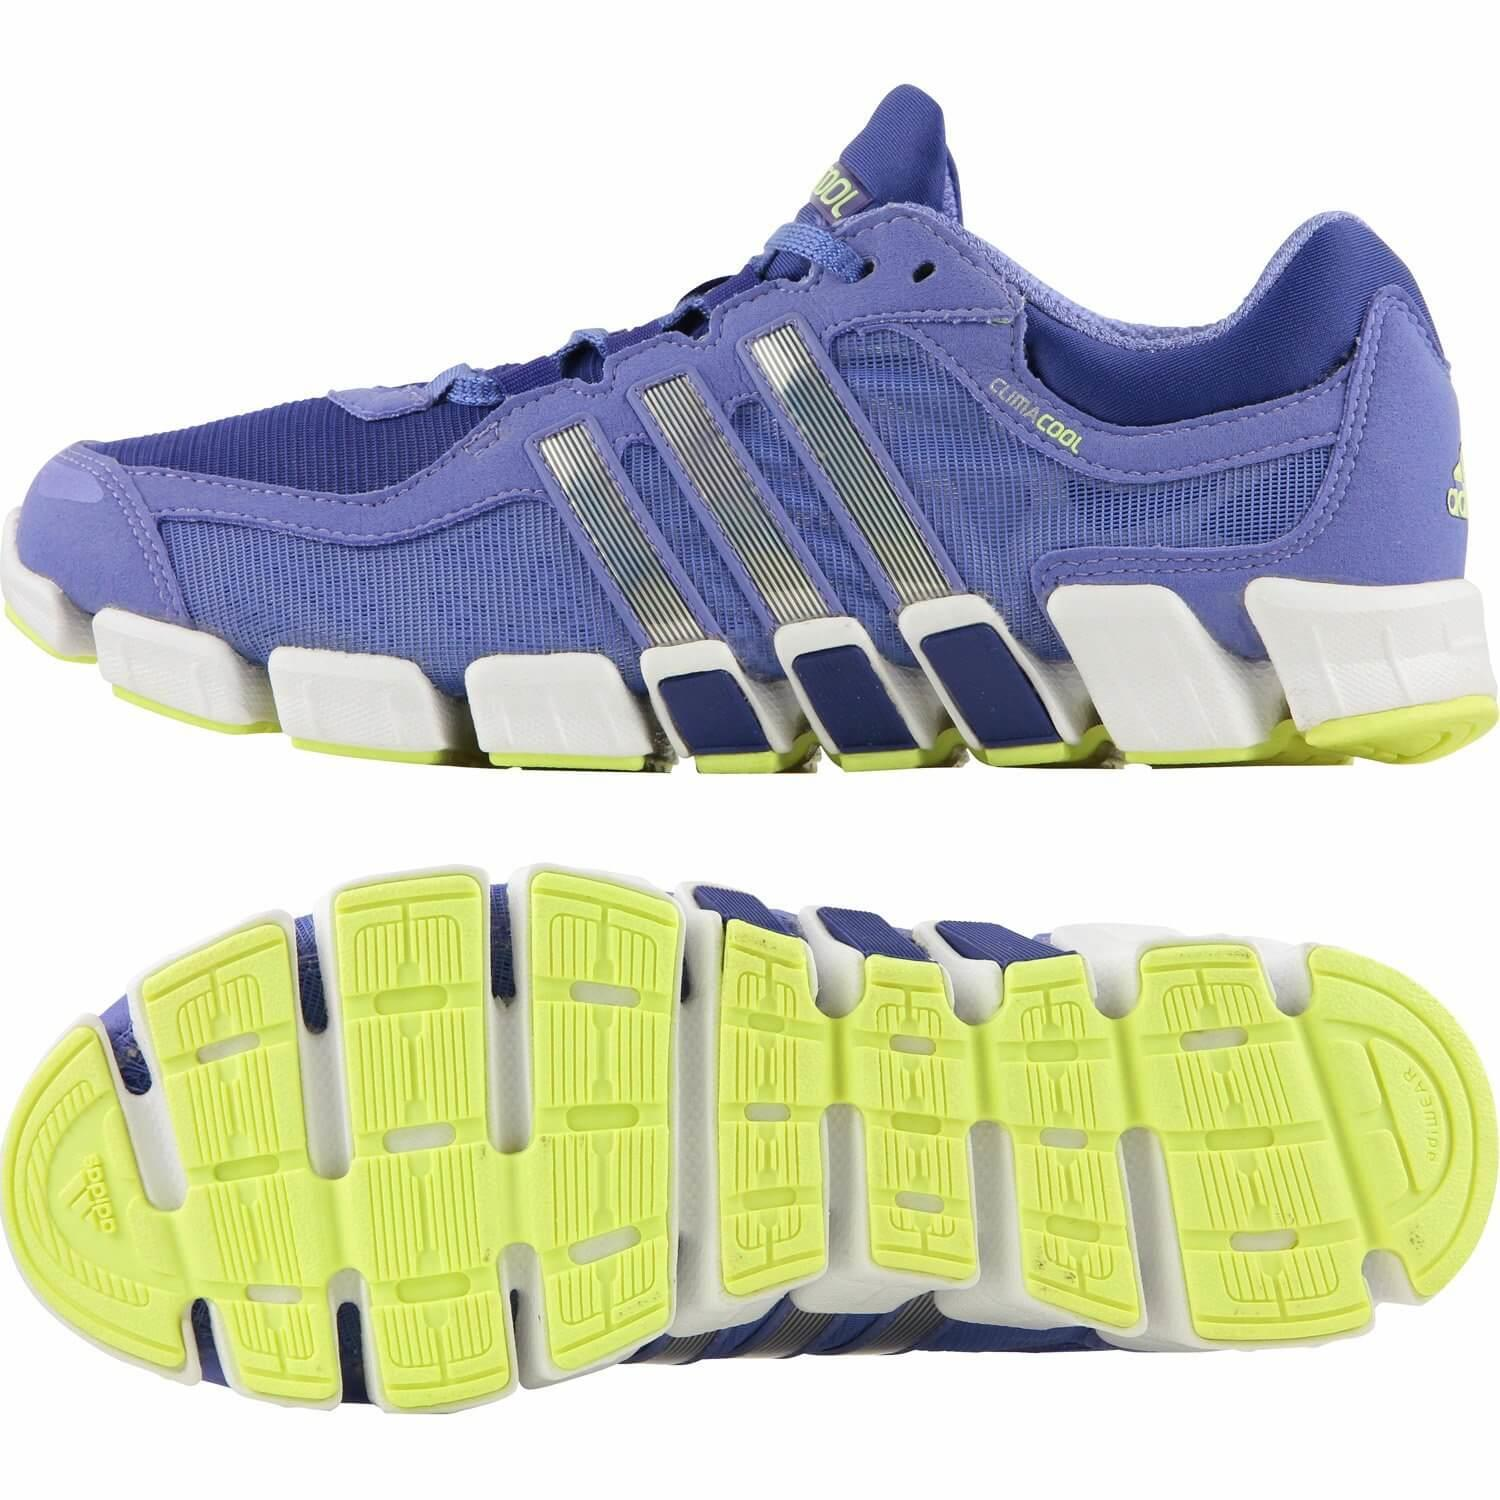 size 40 853f1 883e4 ... Bright and complimentary colors give the Adidas Climacool Freshride a  stylish appearance ...